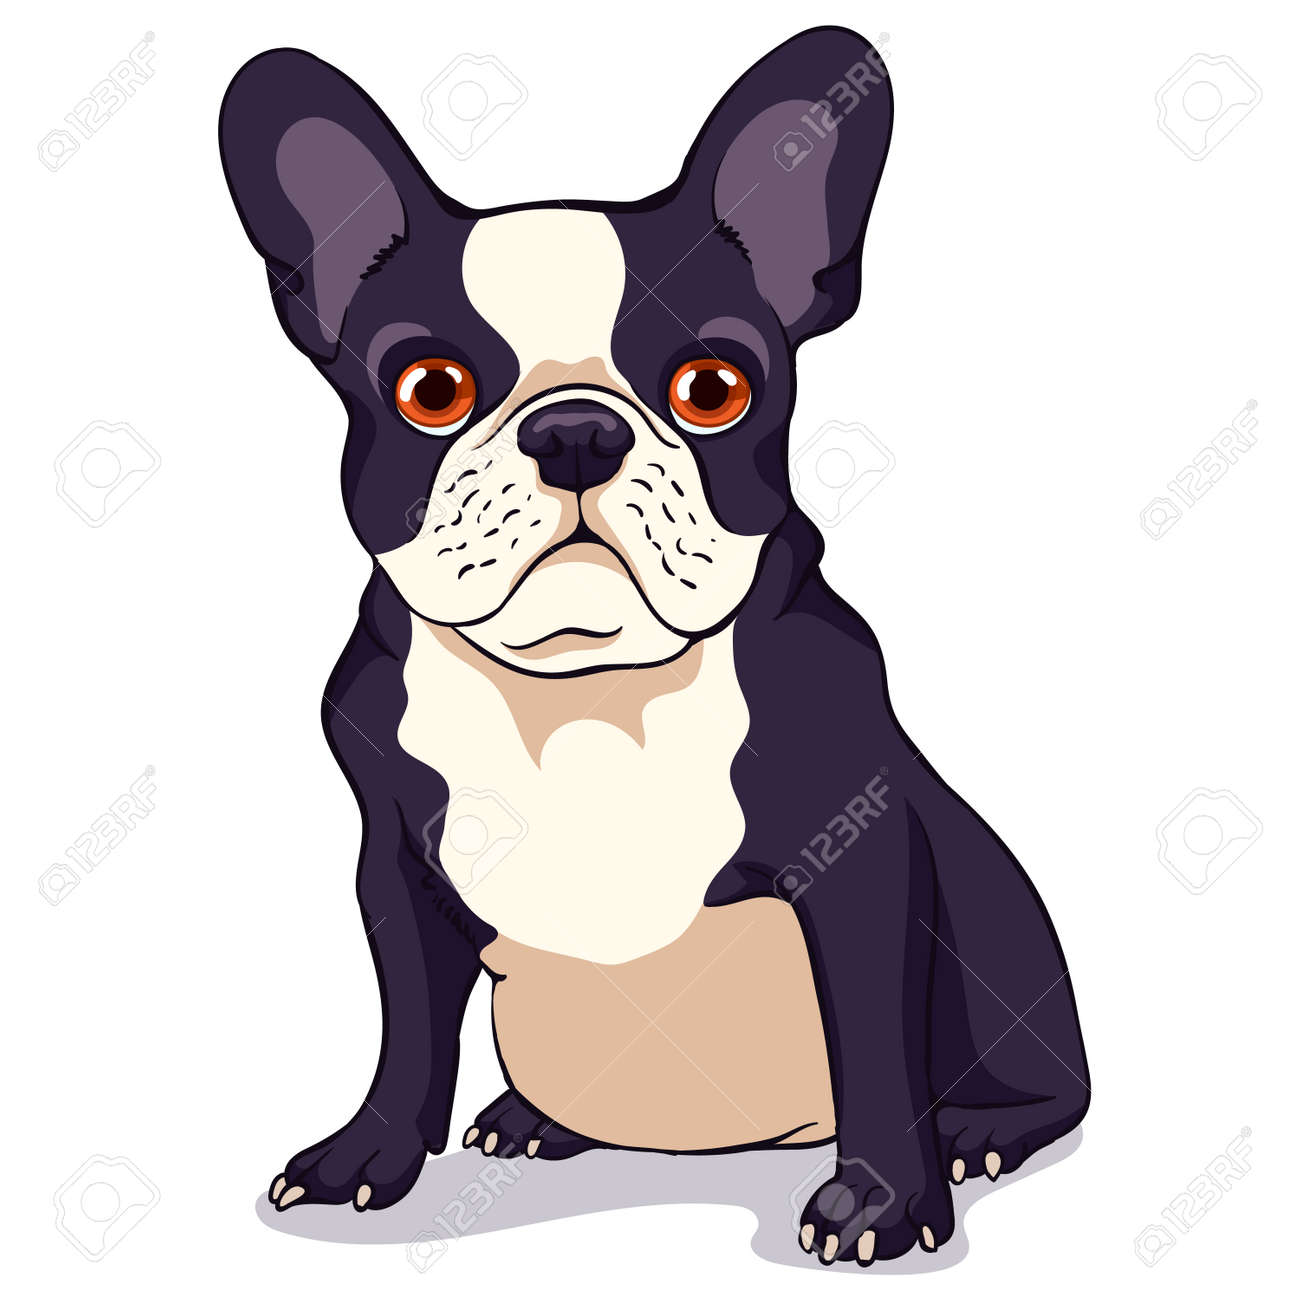 Cute French Bulldog With A Black And White Color Of Wool On A